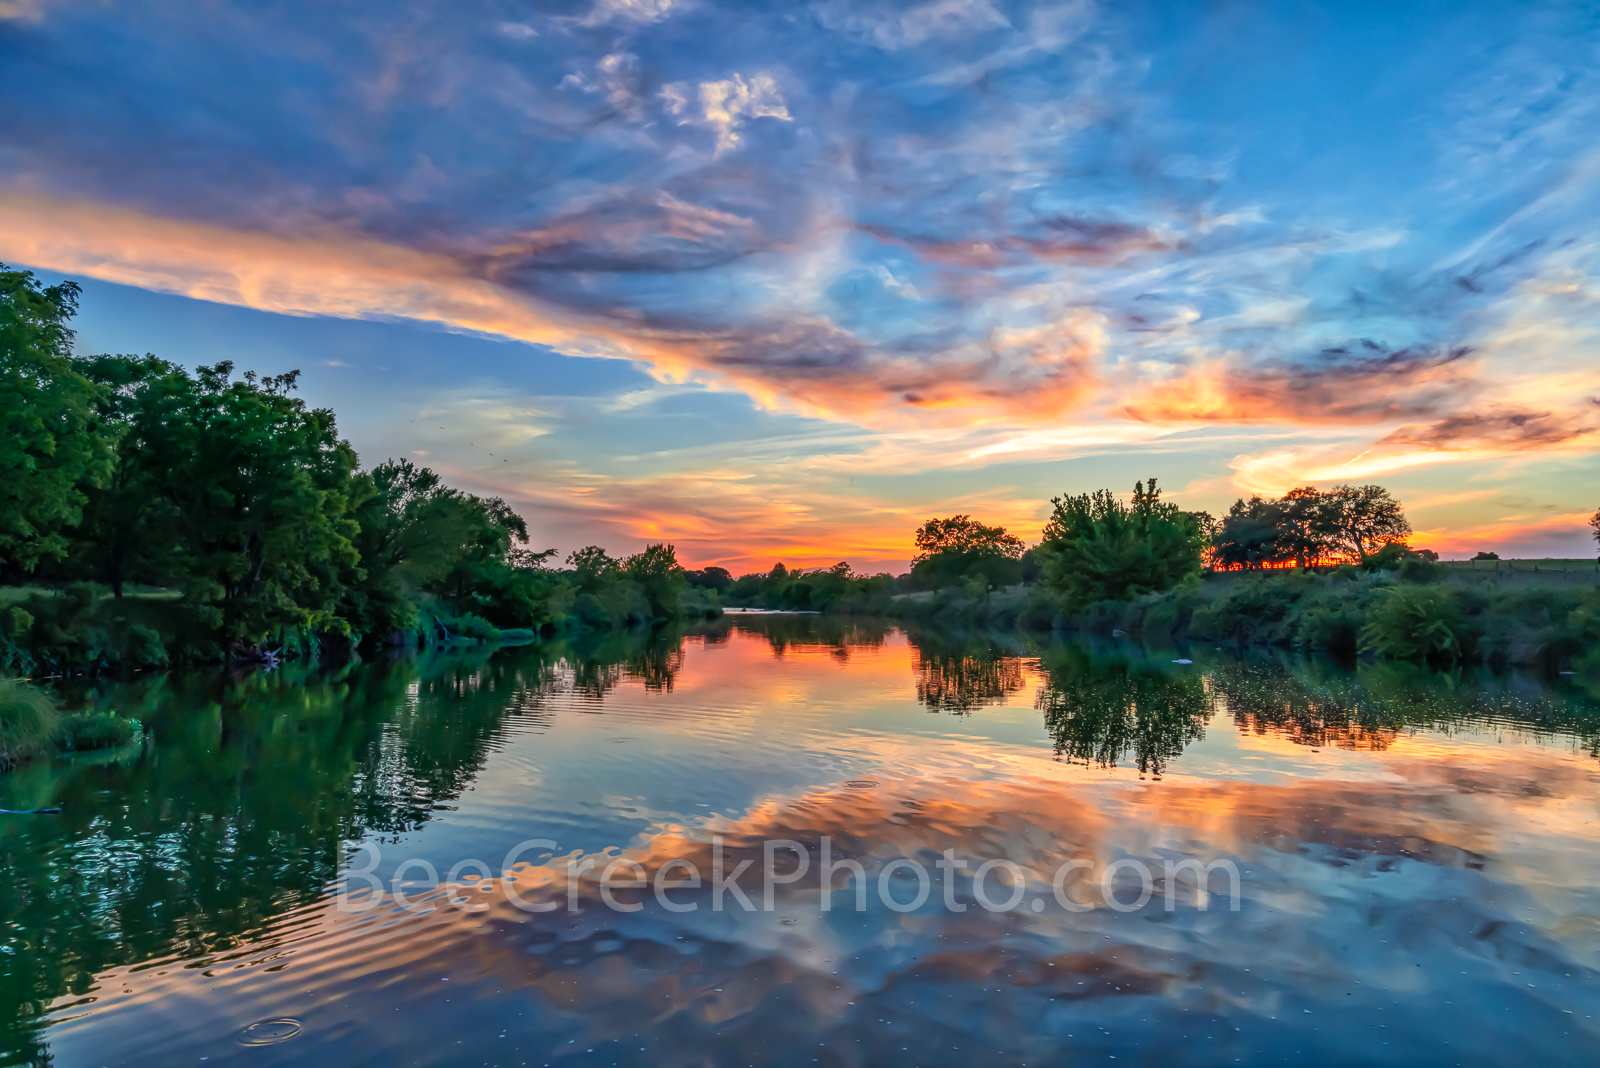 Texas Hill Country Sunset, Texas Hill country, images of texas, sunset, Pedernales river, landscape, water, river, trees, rurals, Colorado river, central texas, hill country, Texas. rural, LBJ Ranch, , photo